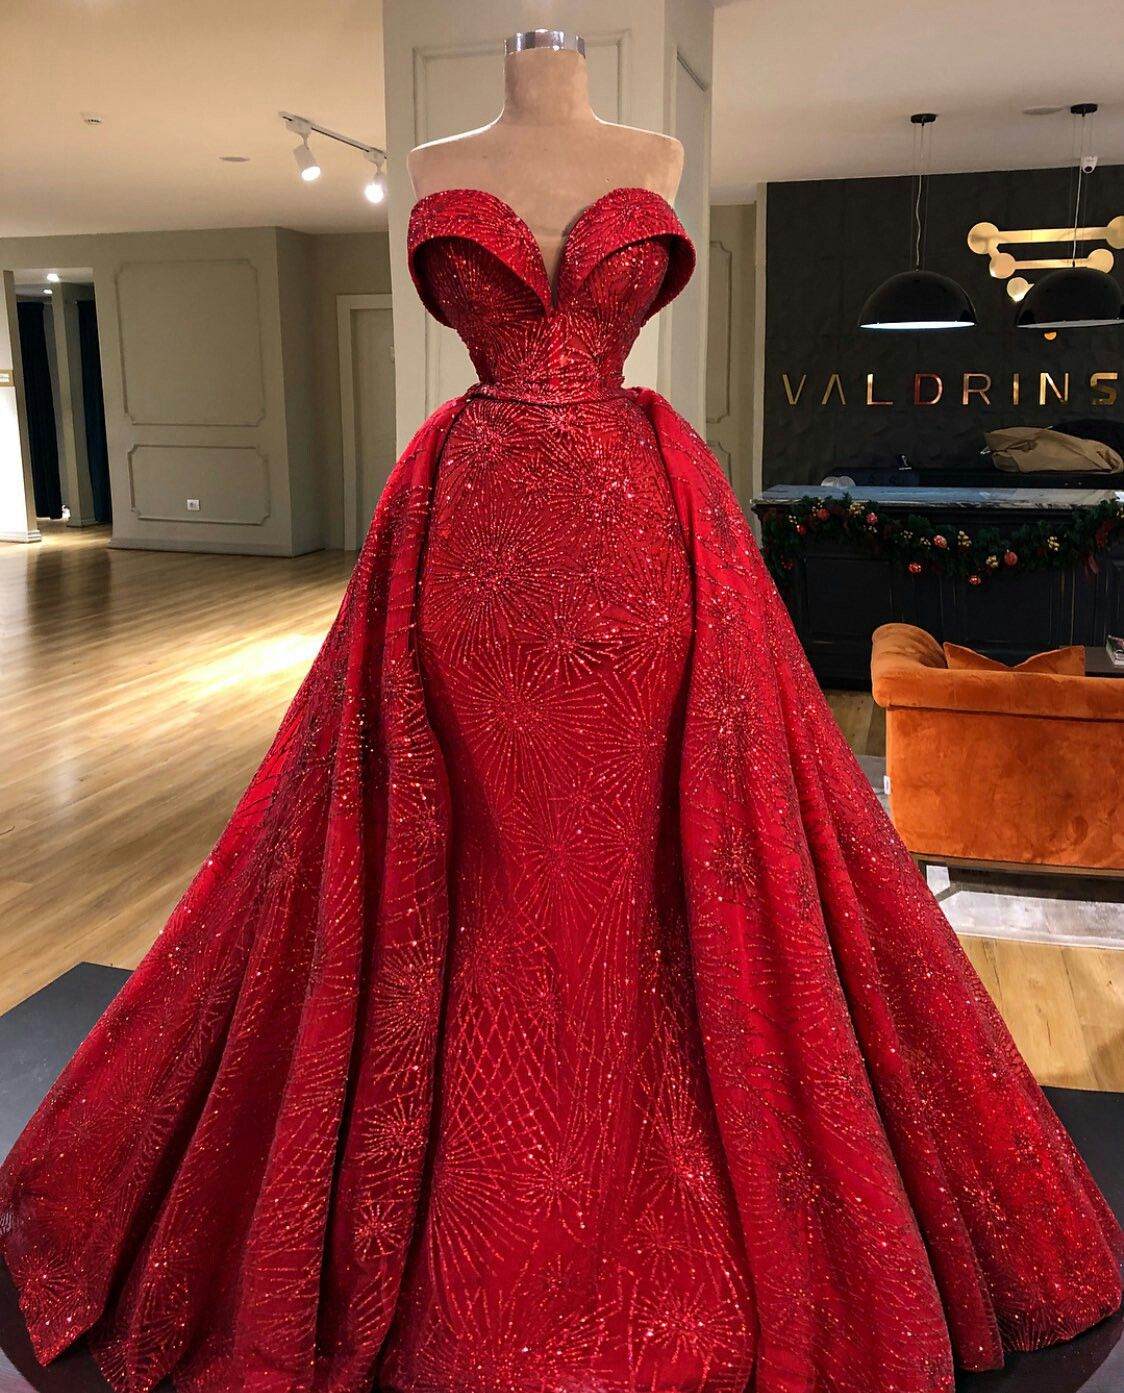 Grand session dress | Grand session Atire | Red lace prom ...